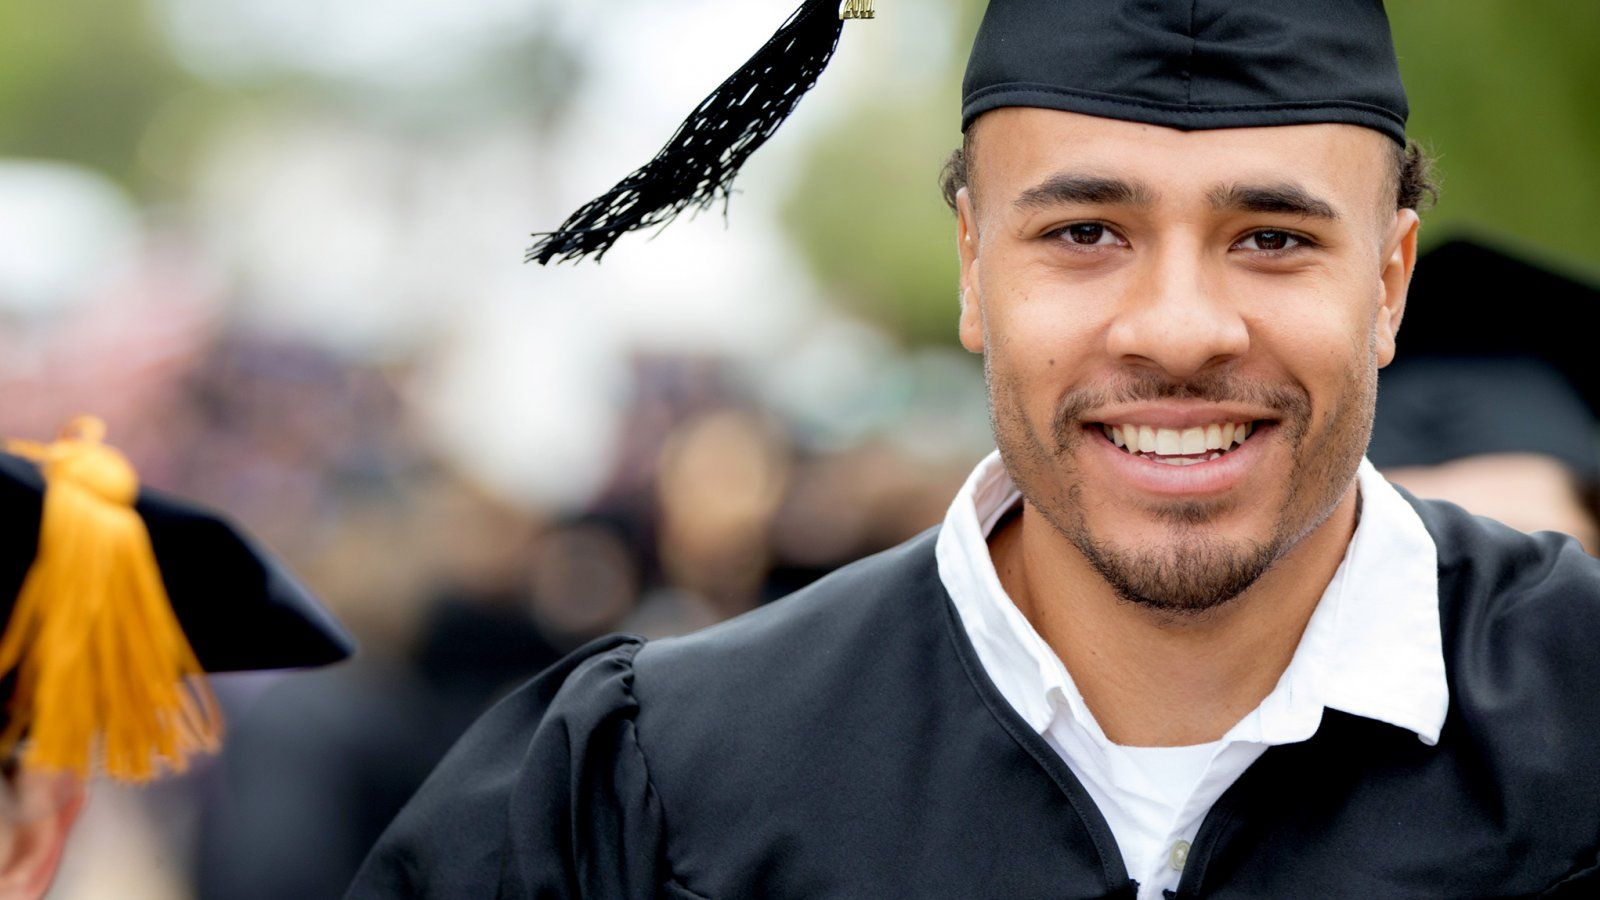 Male Graduate waiting to enter the Greek for the Commencement Convocation